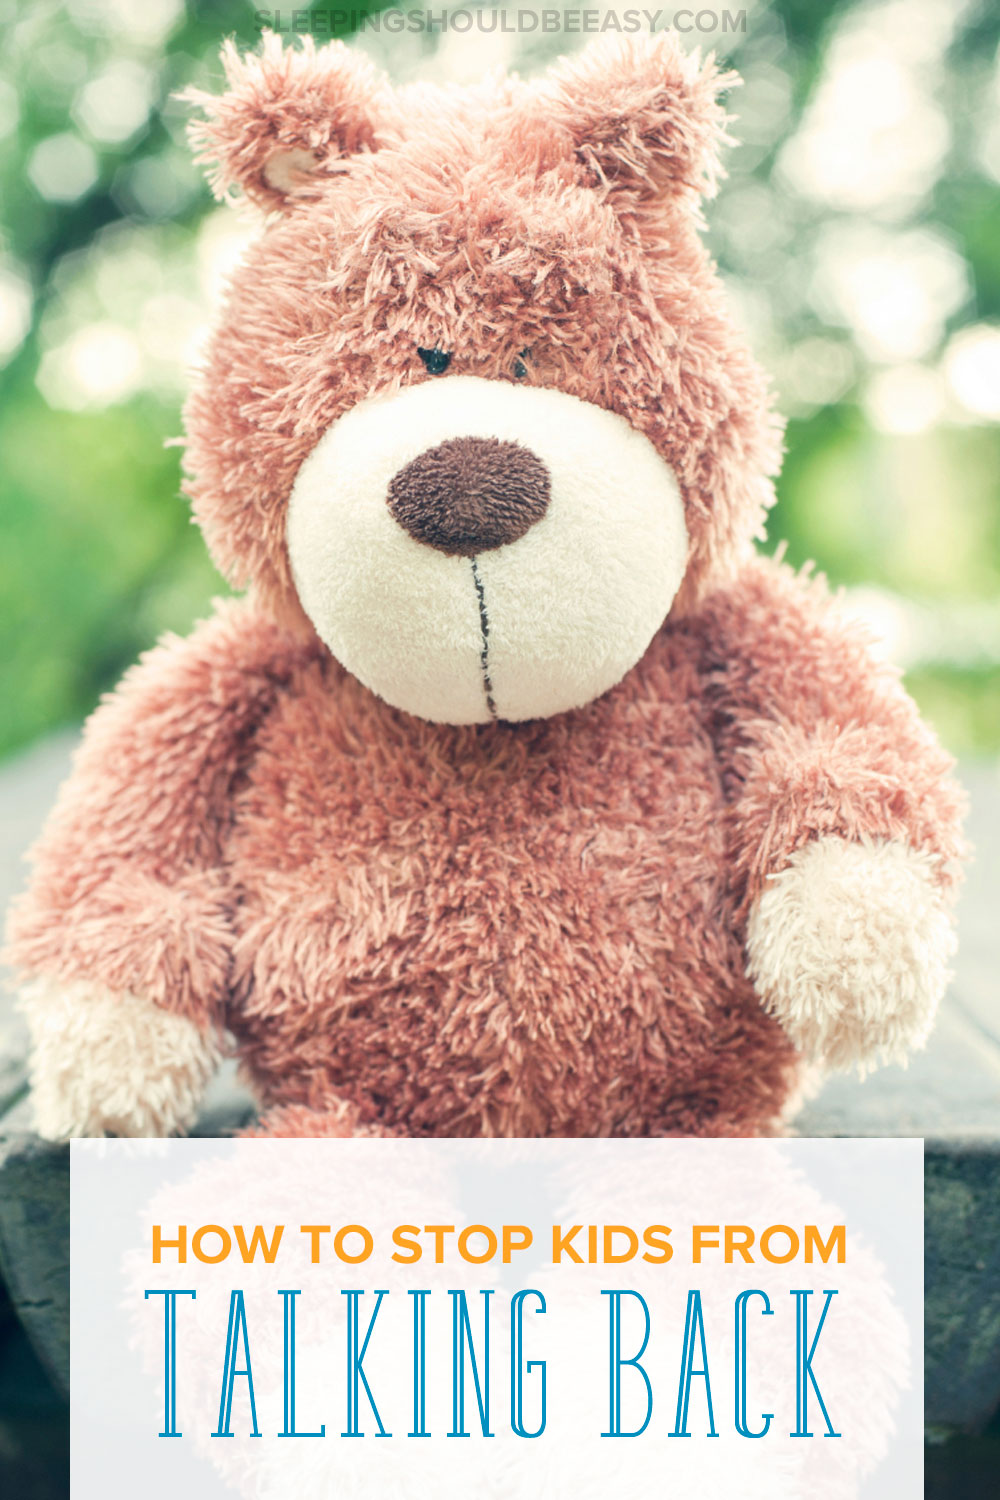 Effective tips for any mom trying to get children to stop talking back. One of the hardest parts of parenting is learning how to respond when kids are disrespectful or talk back. If your child has been talking back and you don't know what to do, this article not only explains why, but how to understand their behavior and provide them with other ways to express their feelings. Even includes a FREE printable where you'll learn ONE effective word to get your child to listen!